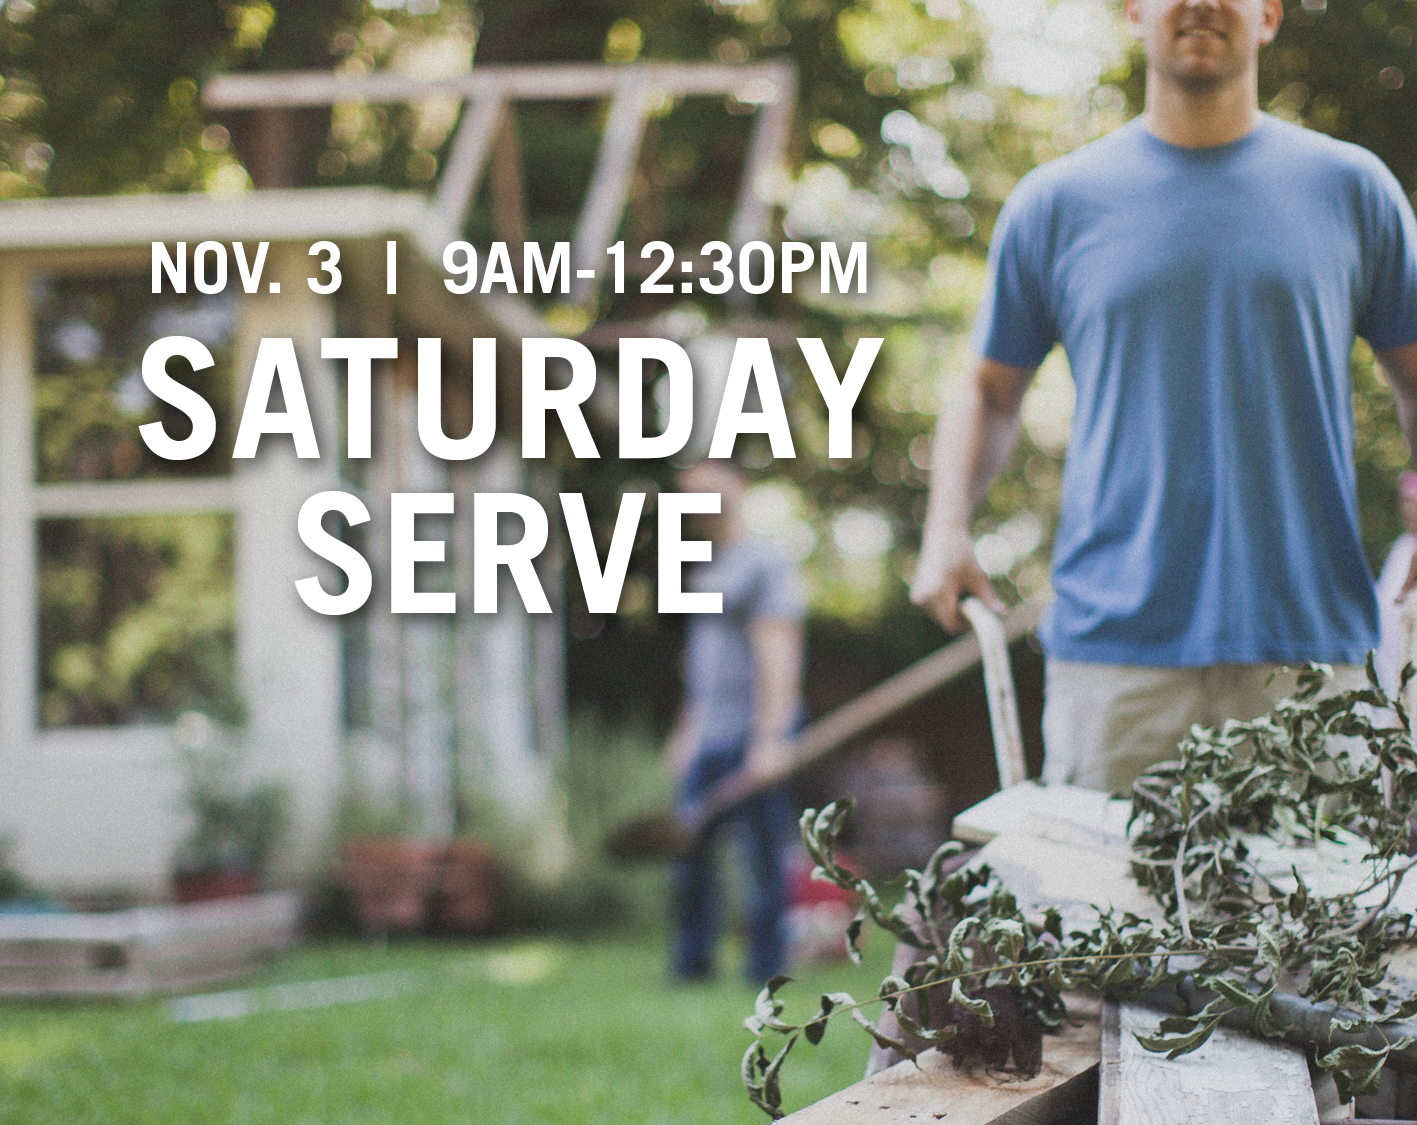 Saturday Serve